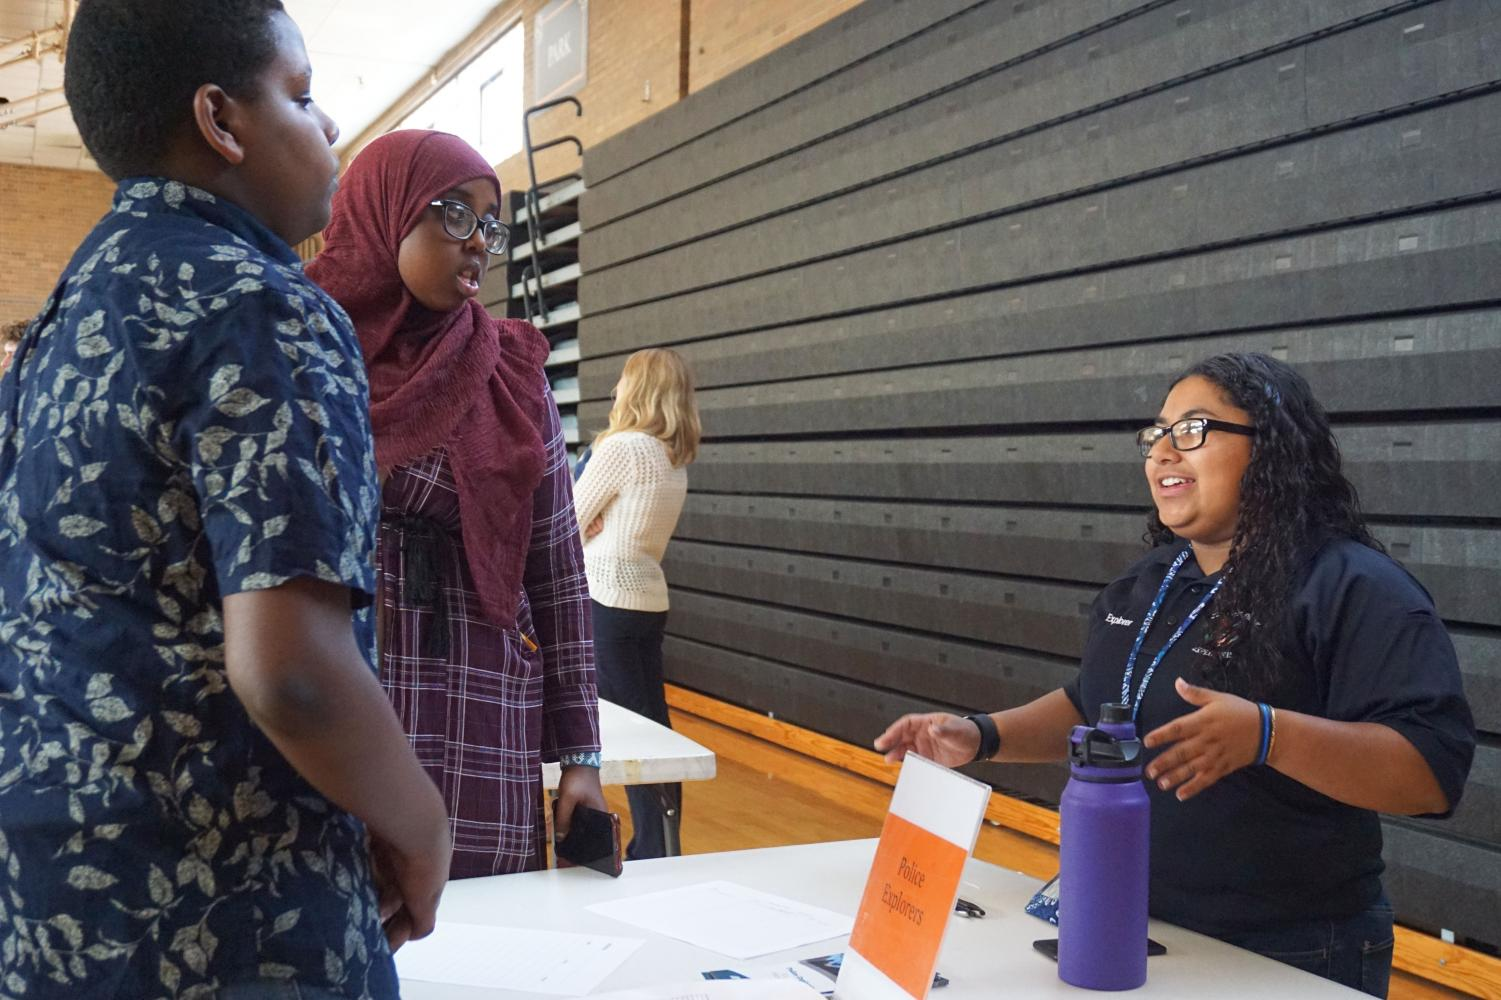 Junior+Isela+Perez-Kauhaihao+talks+with+incoming+freshmen+about+her+experience+on+the+Police+Explorers.+This+program+is+one+of+the+many+students+could+learn+about+during+the+activities+fair+Aug.+28.